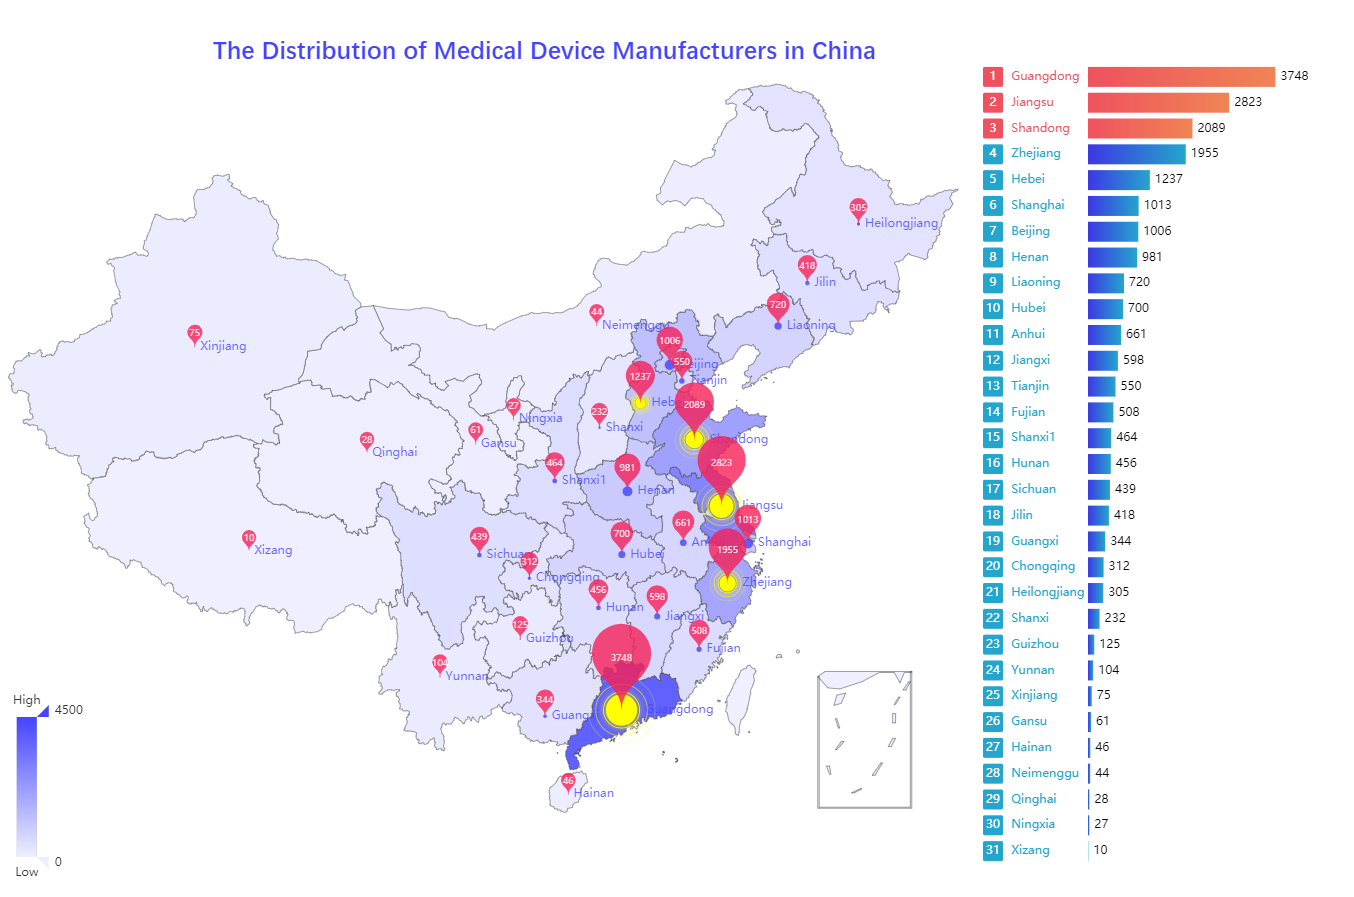 The Distribution of Medical Device Manufacturers in China